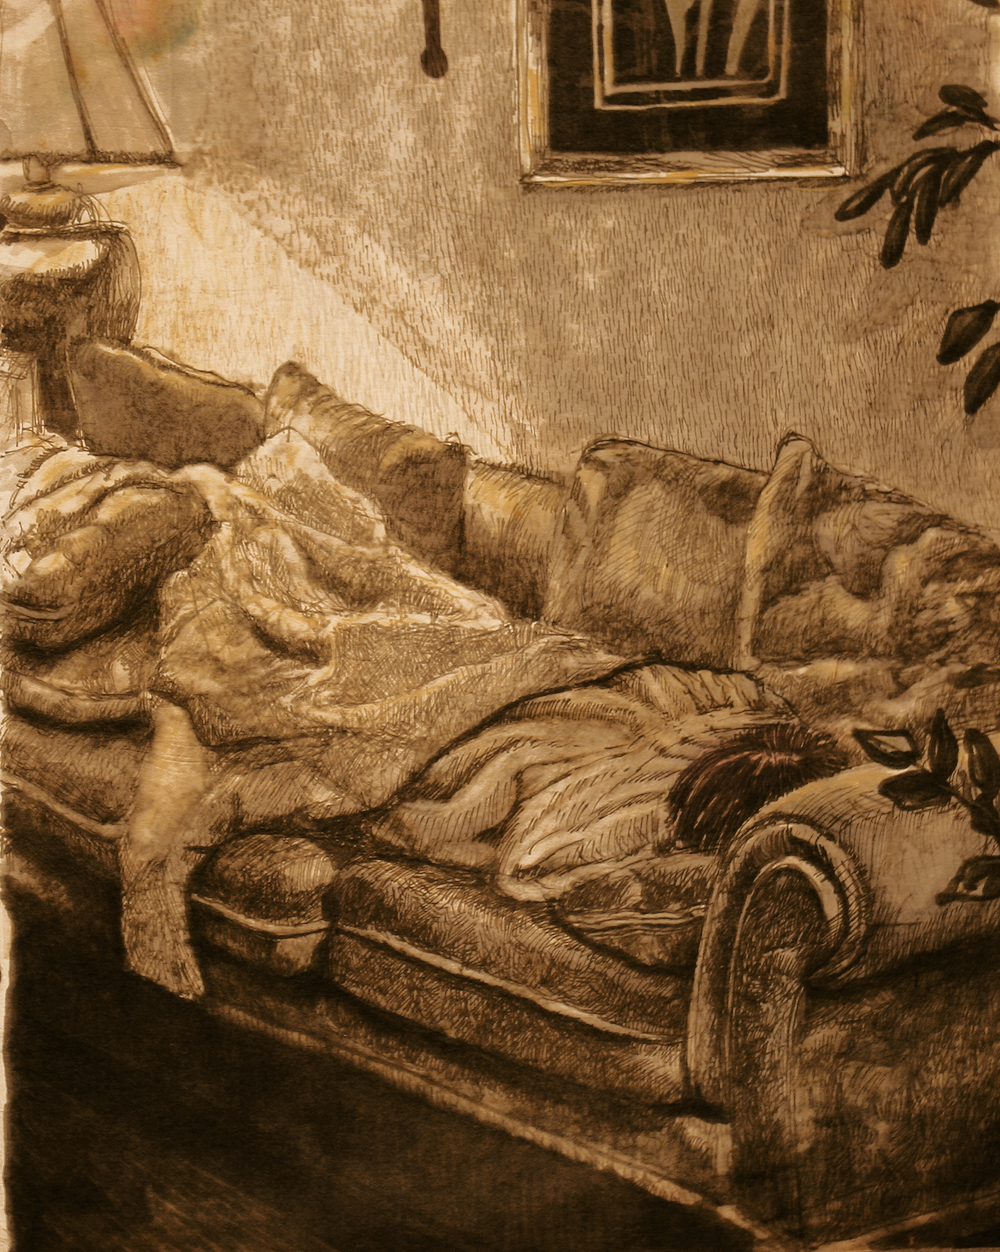 michelle-two-ells-having-a-nap-by-cork-ireland-freelance-artist---art-van-leeuwen